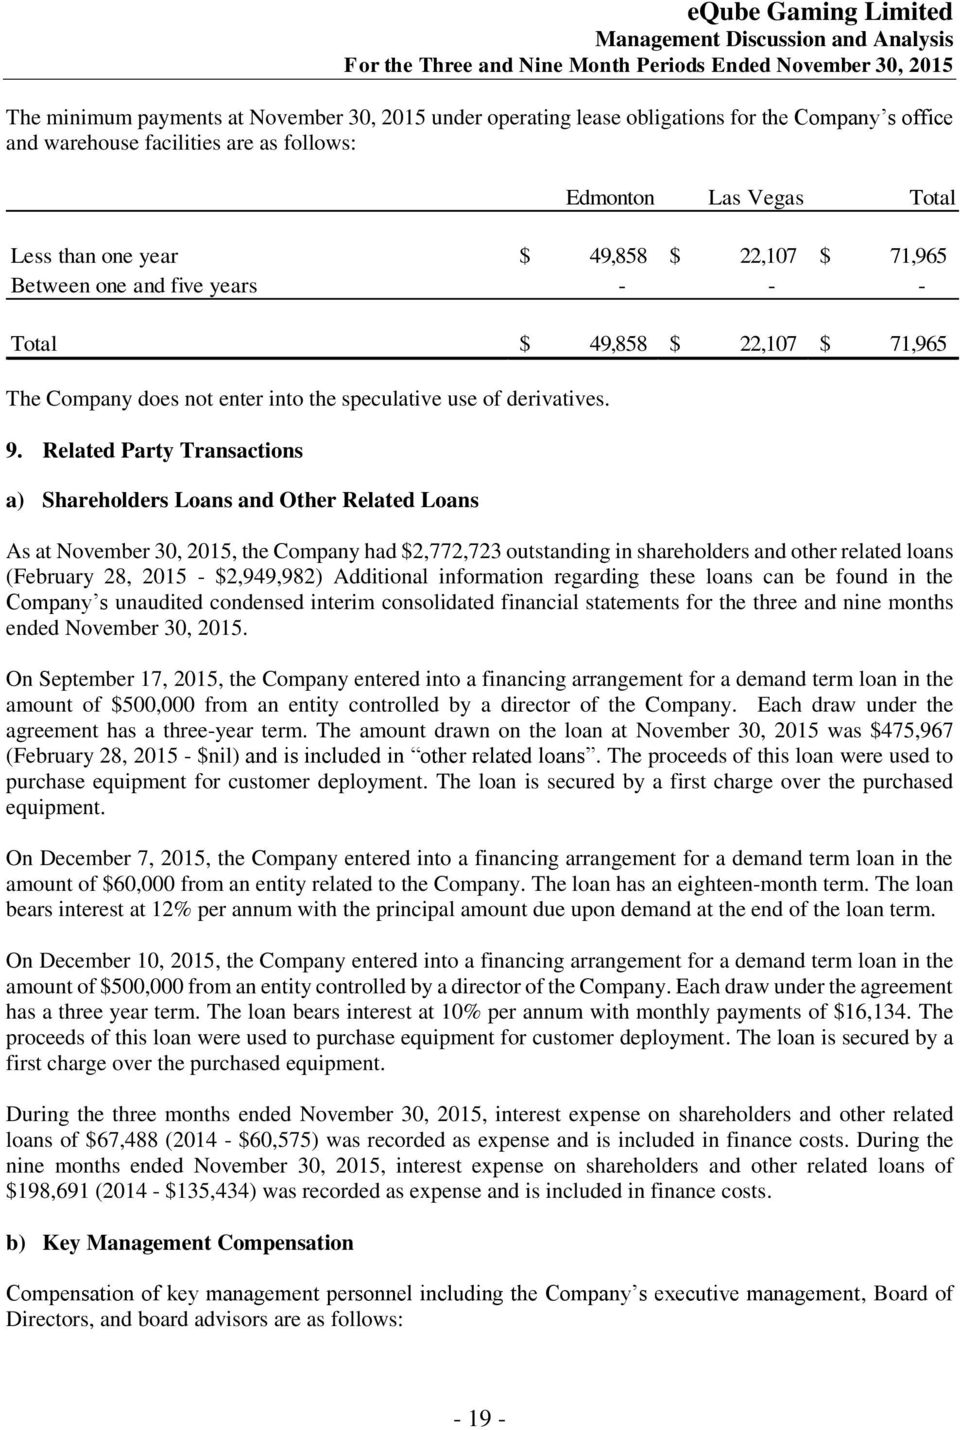 Related Party Transactions a) Shareholders Loans and Other Related Loans As at November 30, 2015, the Company had $2,772,723 outstanding in shareholders and other related loans (February 28, 2015 -